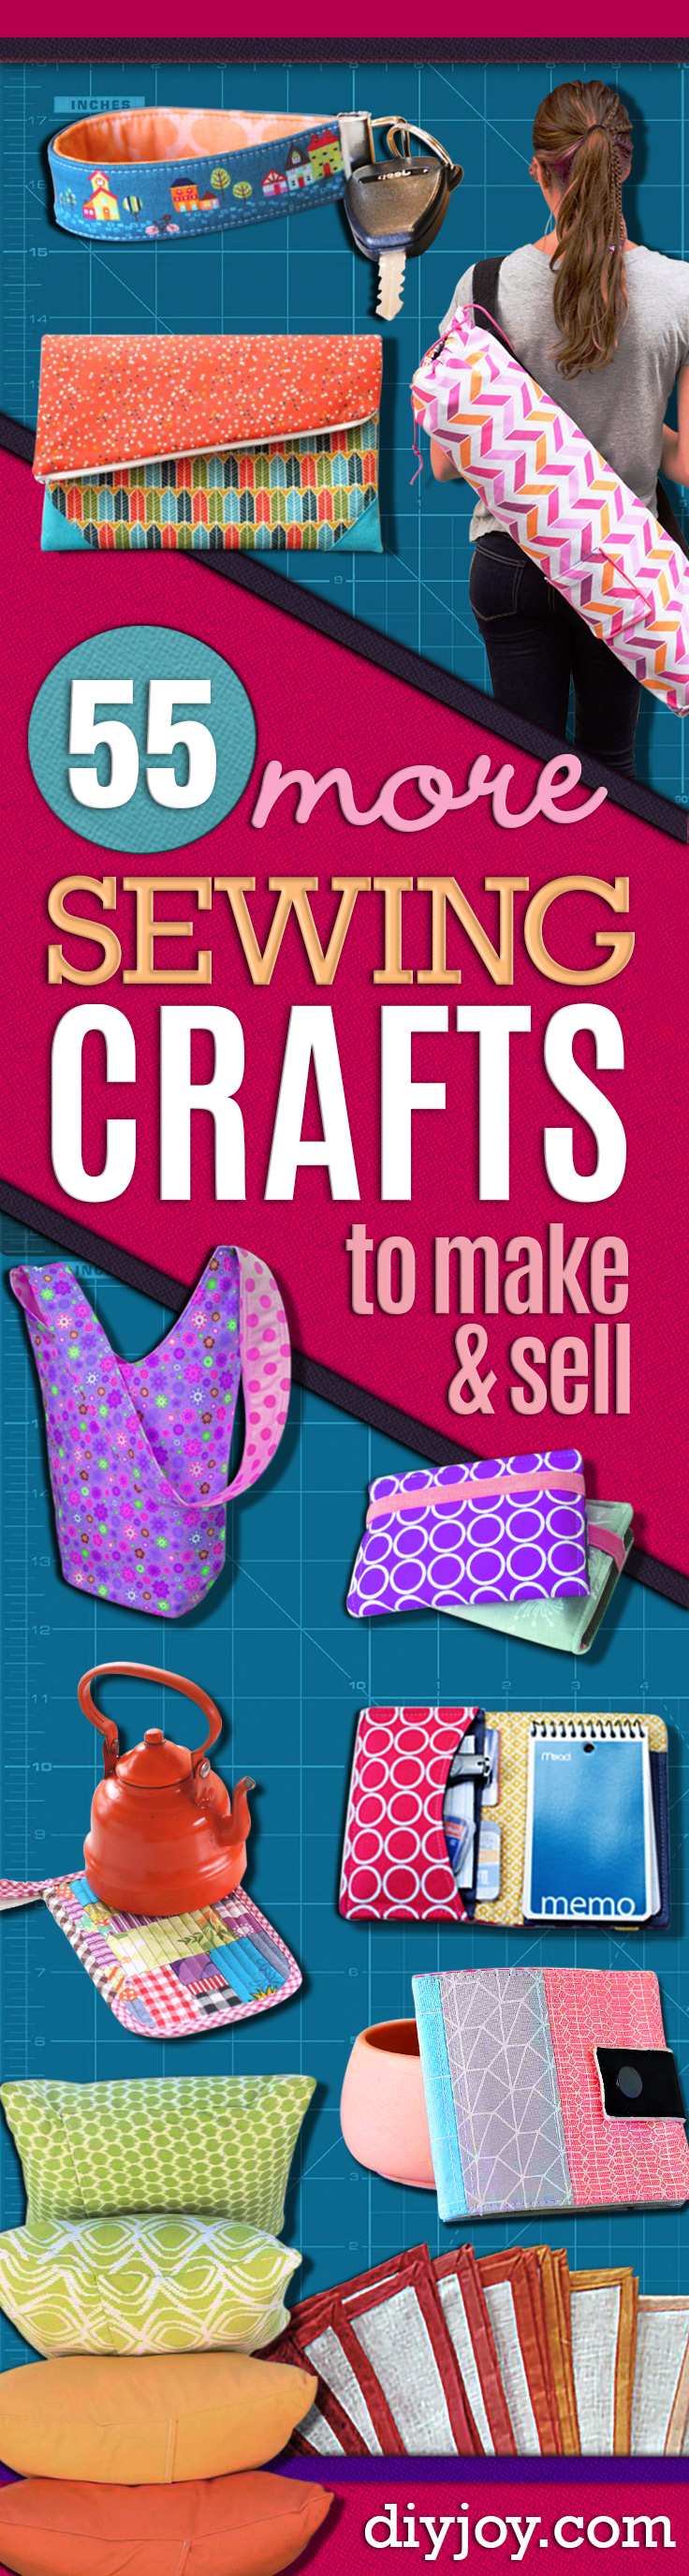 Sewing Crafts To Make and Sell - Easy DIY Sewing Ideas To Make and Sell for Your Craft Business. Make Money with these Simple Gift Ideas, Free Patterns, Products from Fabric Scraps, Cute Kids Tutorials https://diyjoy.com/crafts-to-make-and-sell-sewing-ideas